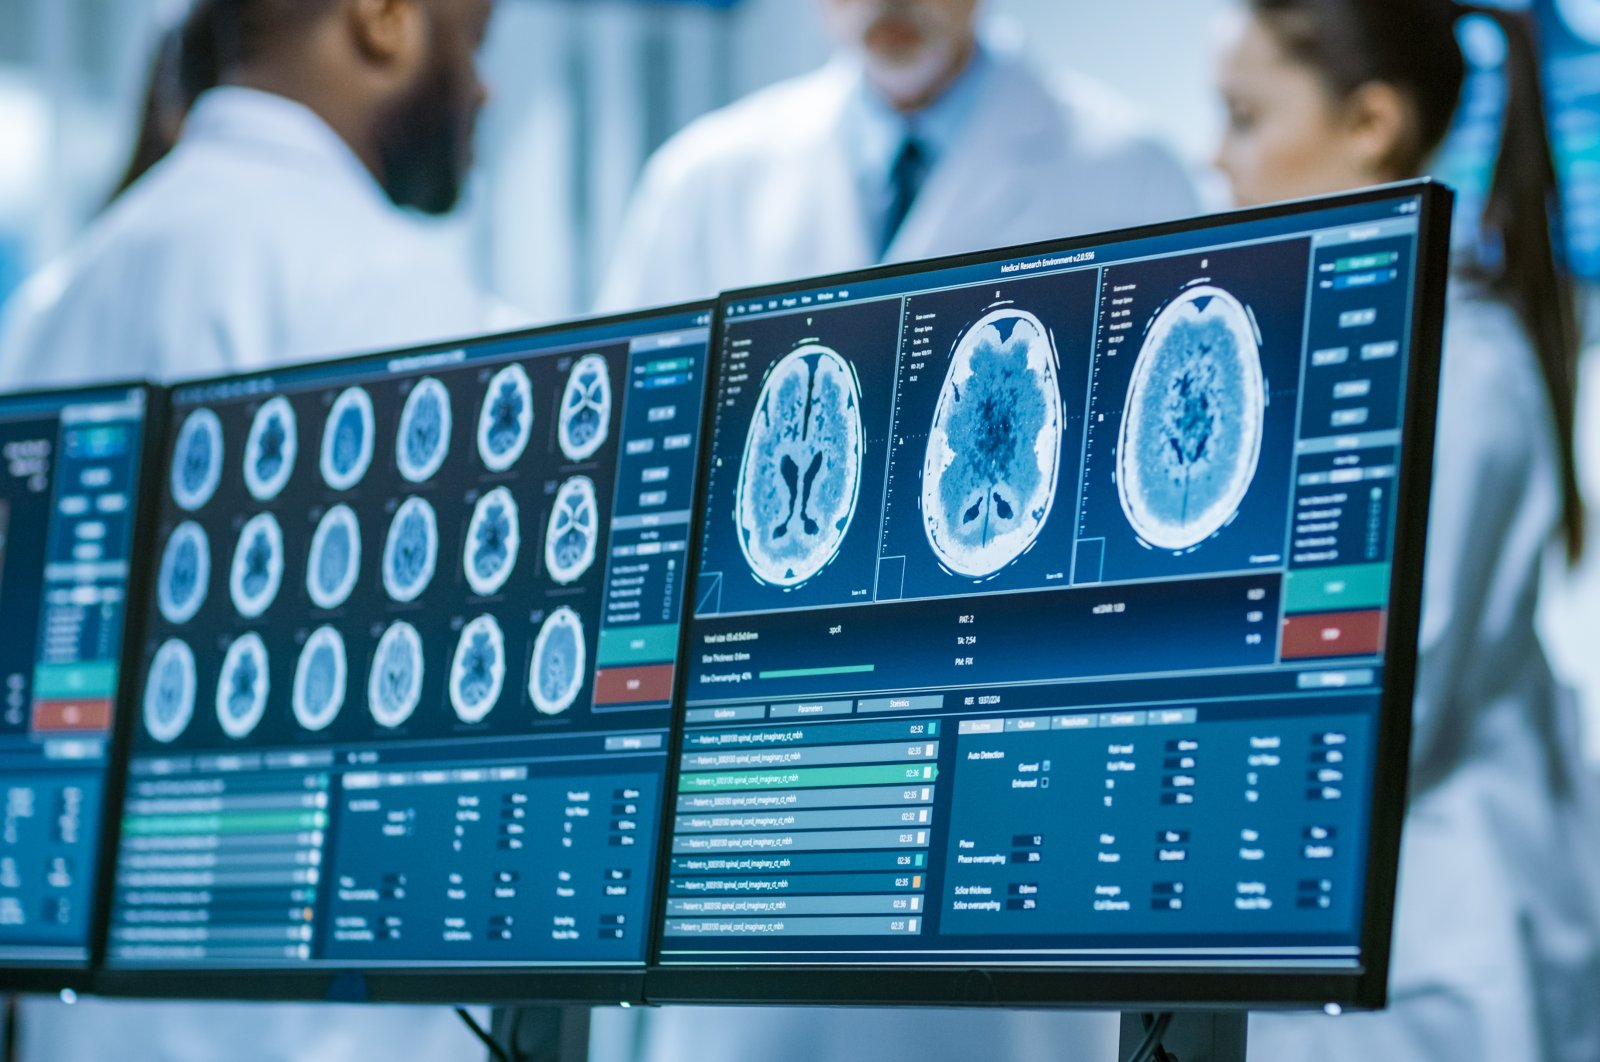 A team of people have a discussion in the background with images of brain scans visible on computer screens. (Shutterstock Photo)